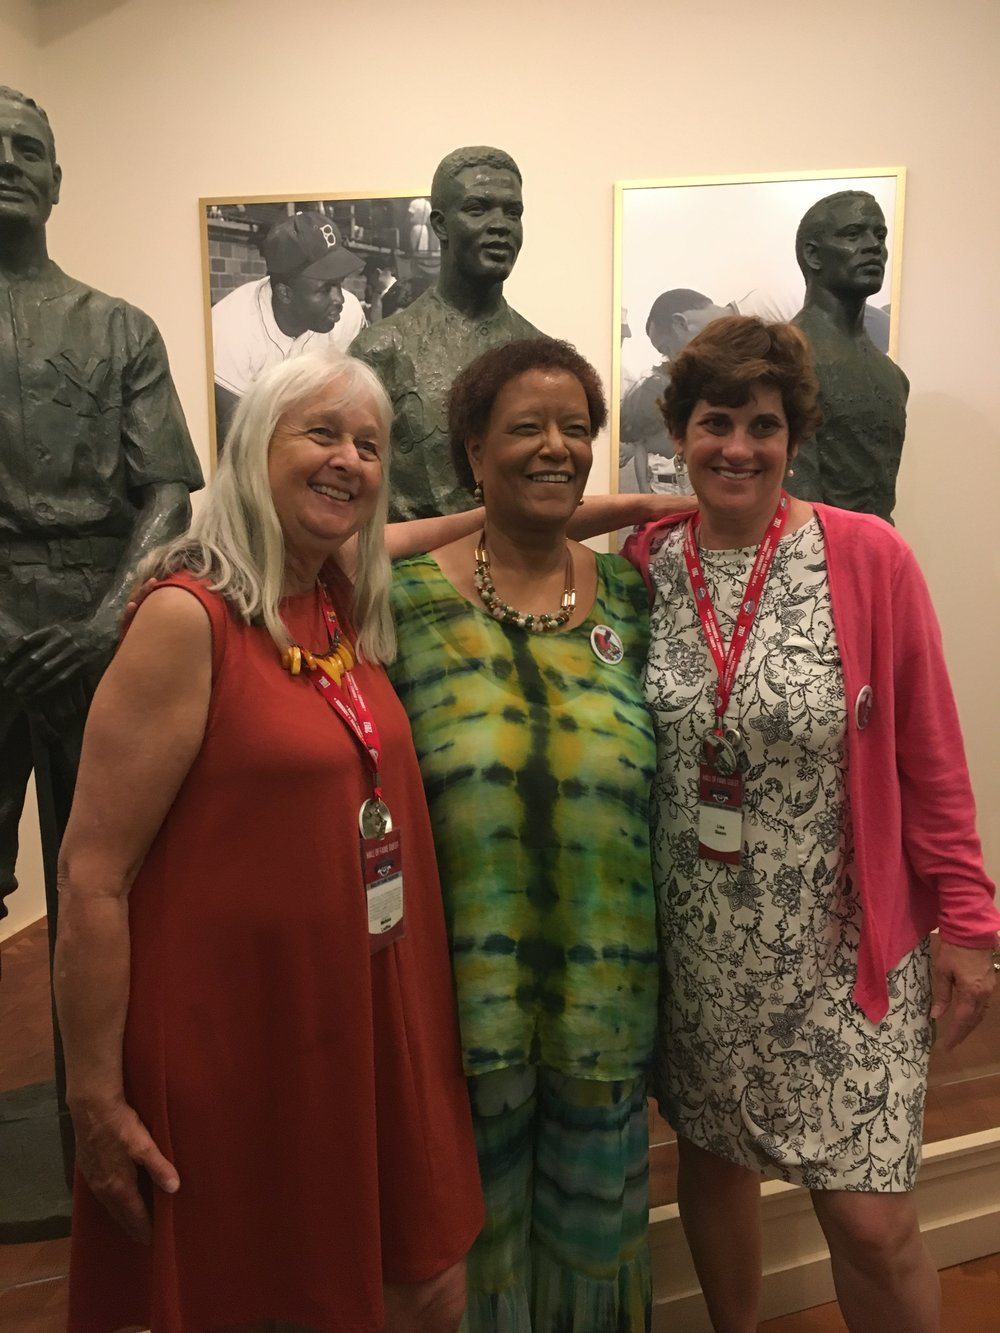 Melissa Ludtke, left, Claire Smith, center, Lisa Nehus Saxon, right, in the Baseball Hall of Fame, celebrating Claire Smith's induction as the first women to ever be inducted into the hall.